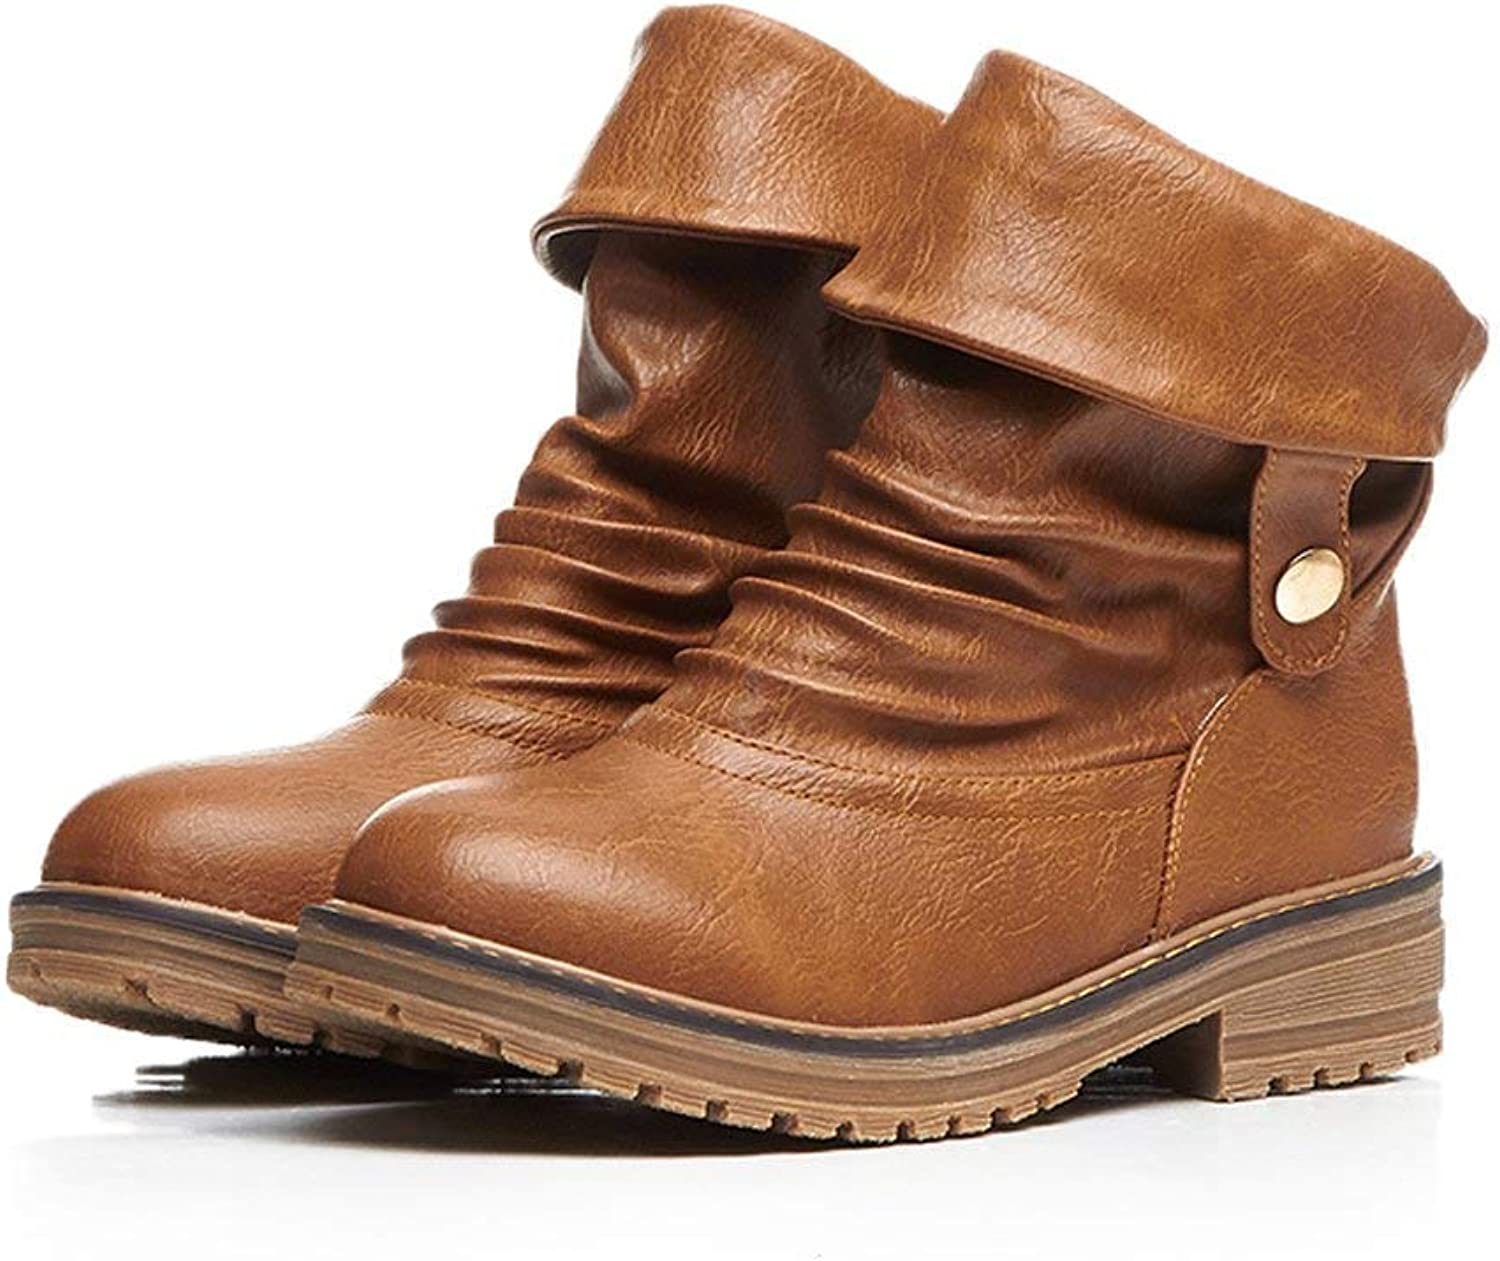 Edv0d2v266 Women's Motorcycle Boots Fashion Foldable Winter Low Heel Faux Leather Ankle Bootie